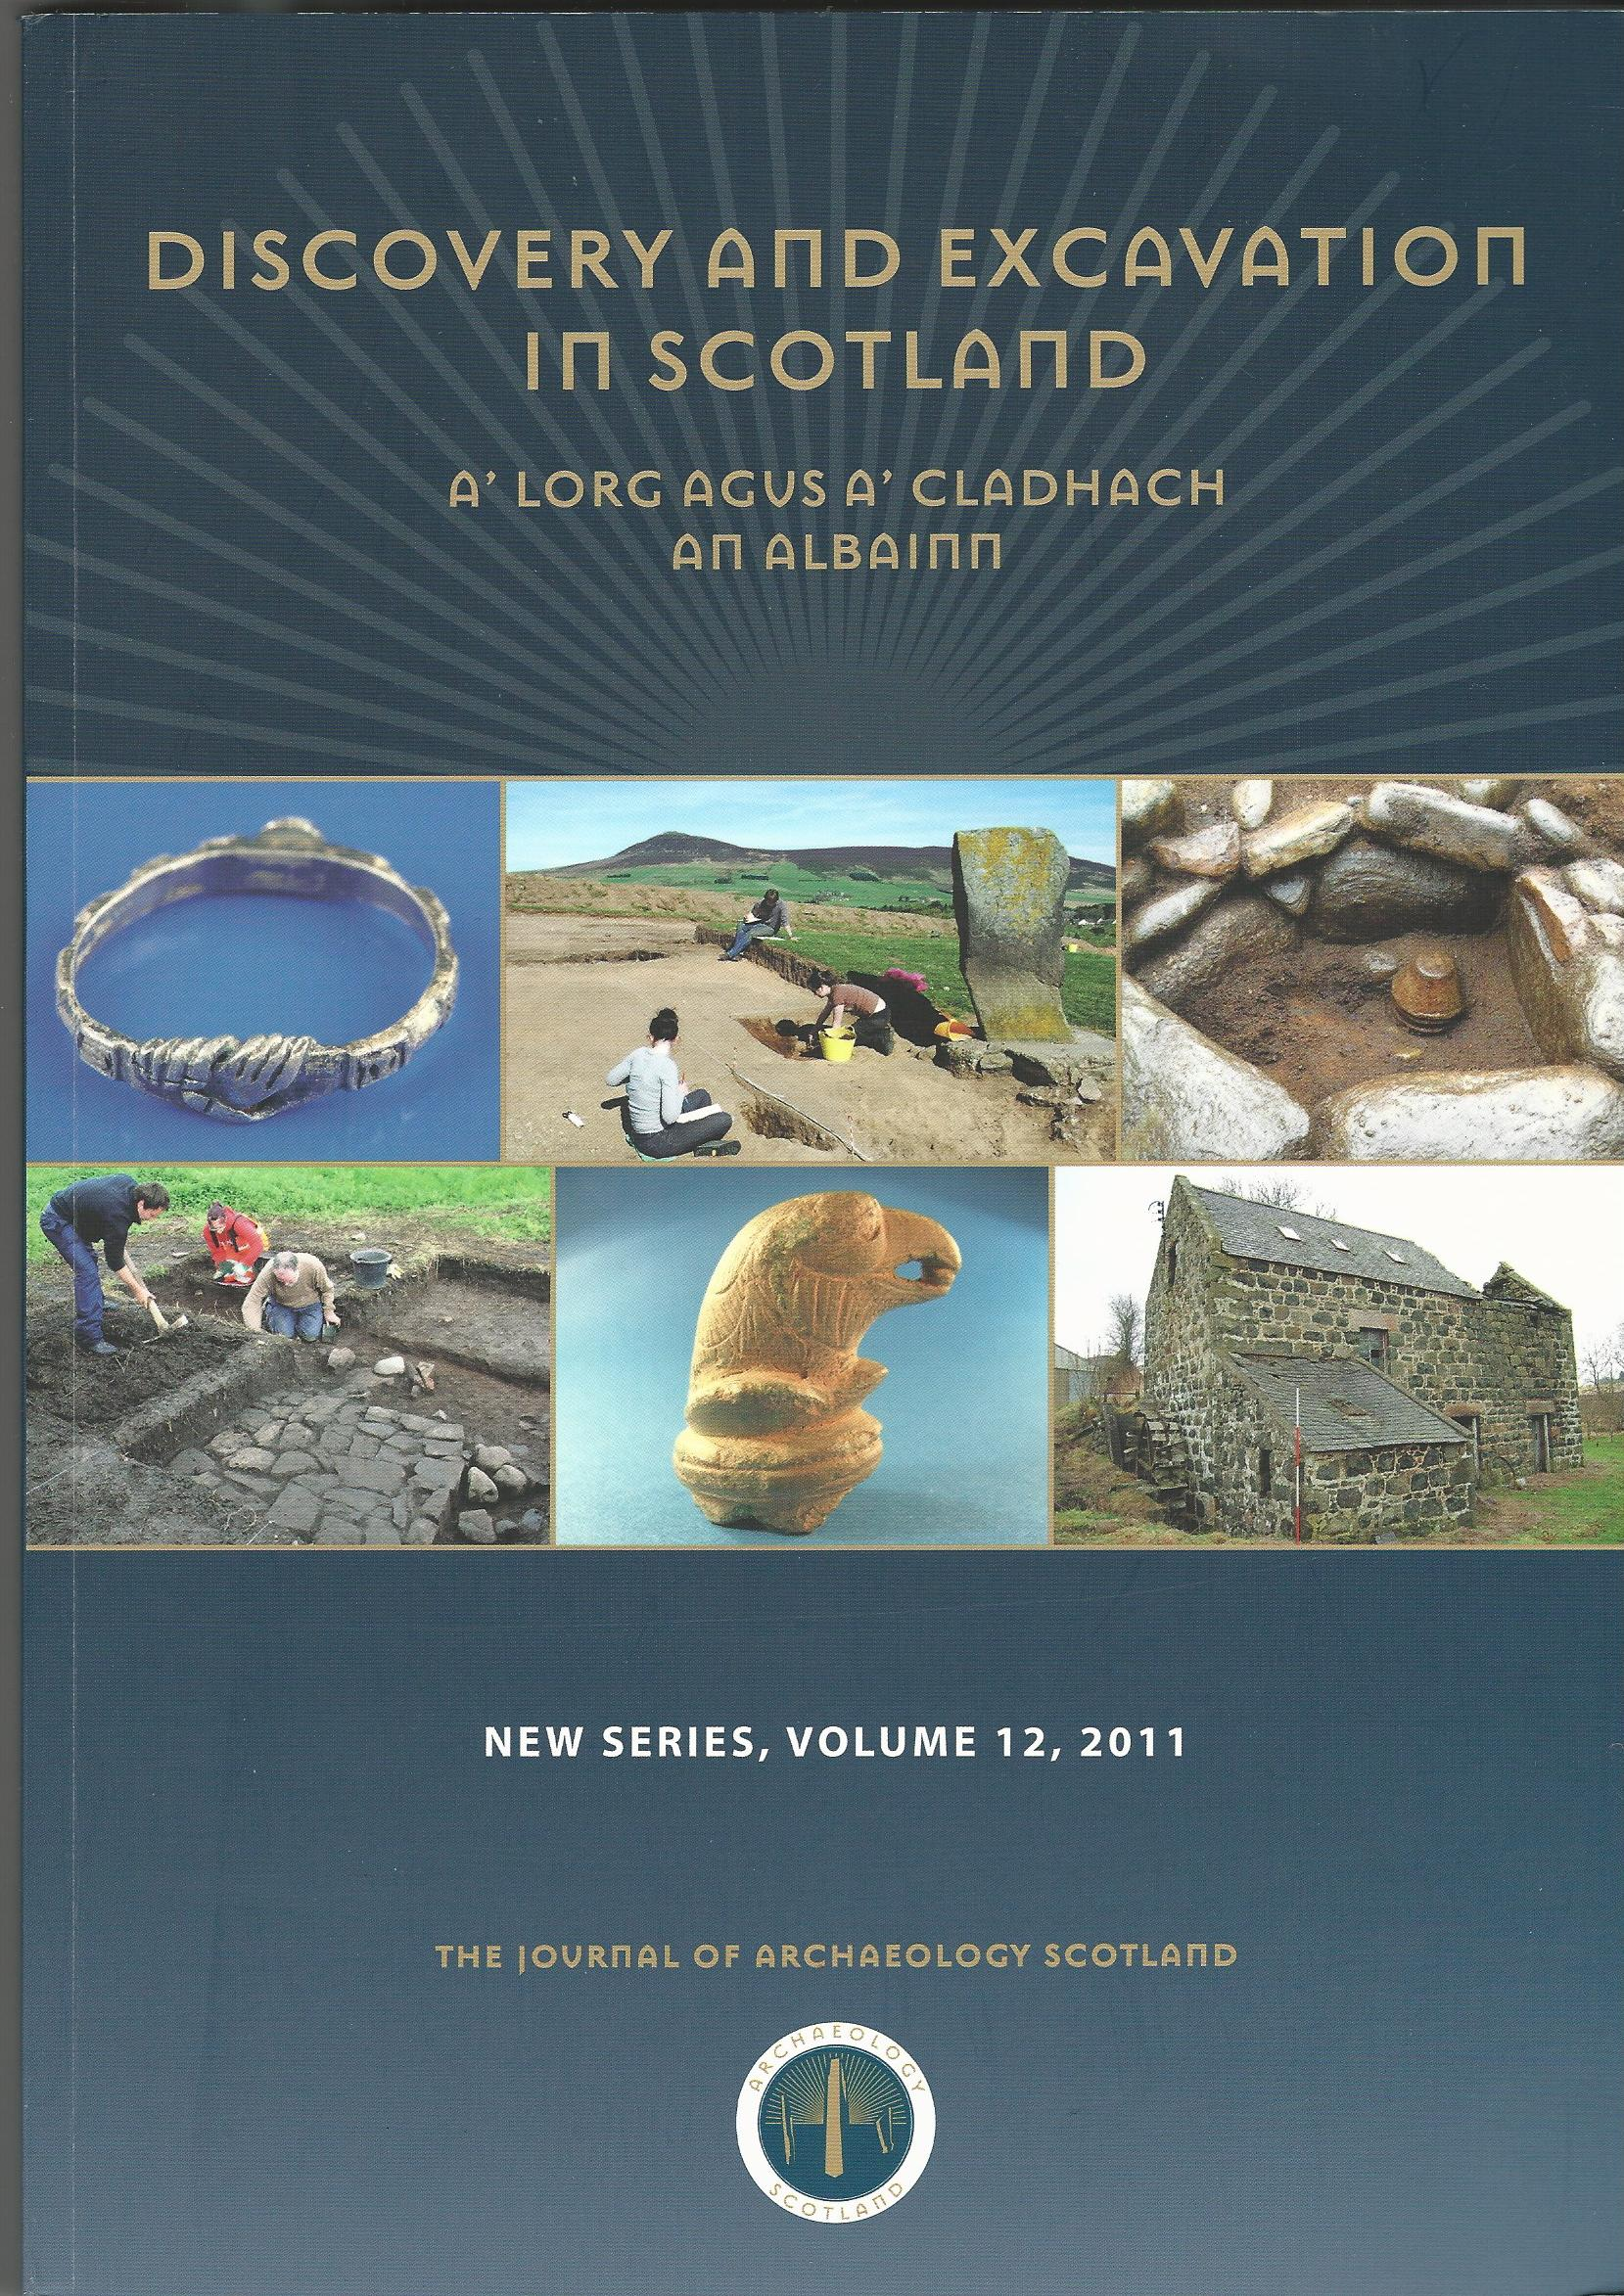 Image for Discovery and Excavation in Scotland, New Series, Volume 12, 2011